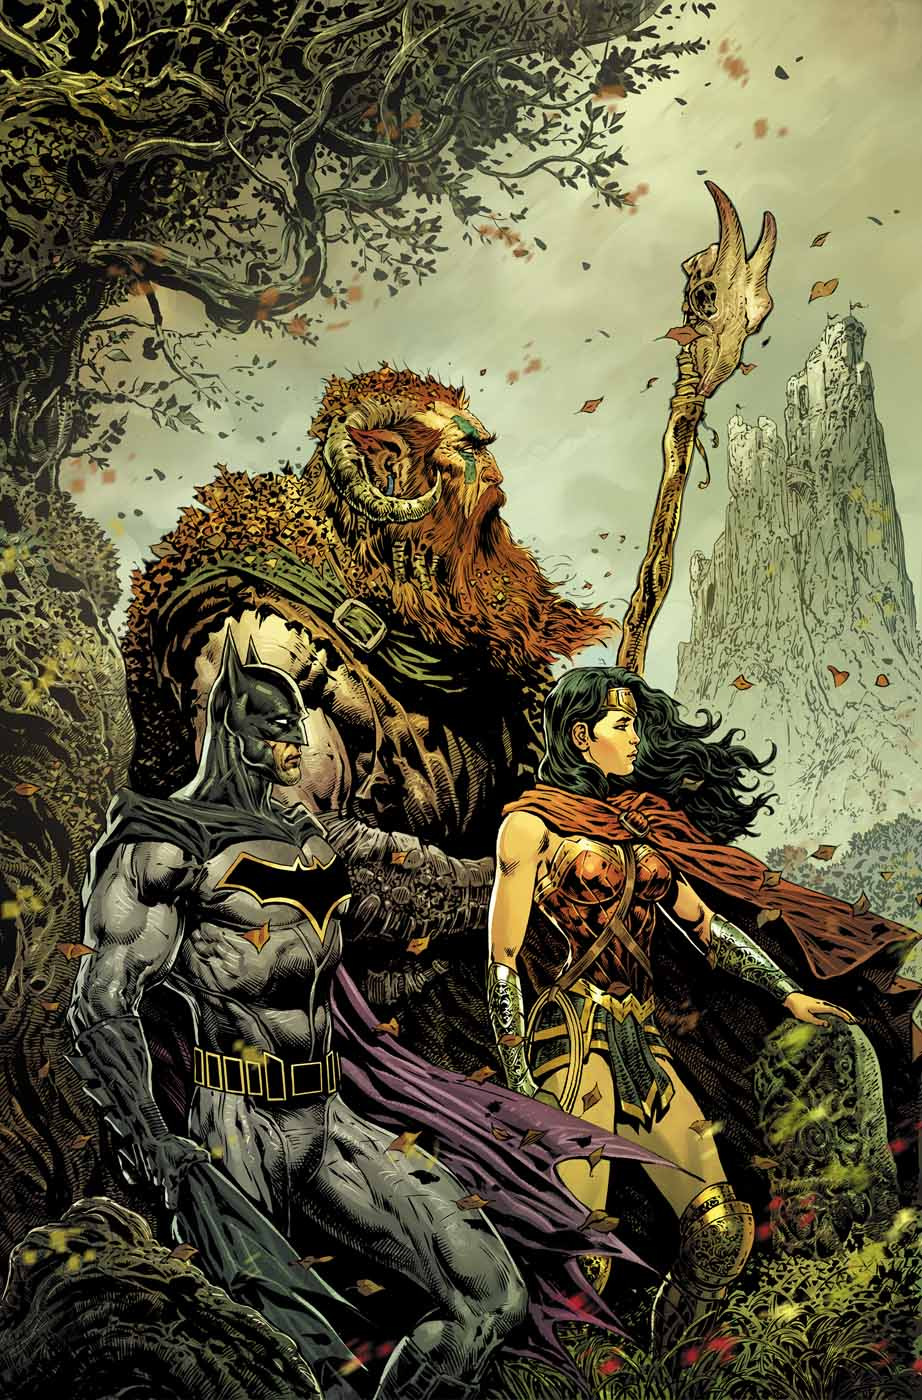 The Brave and the Bold: Batman and Wonder Woman #1